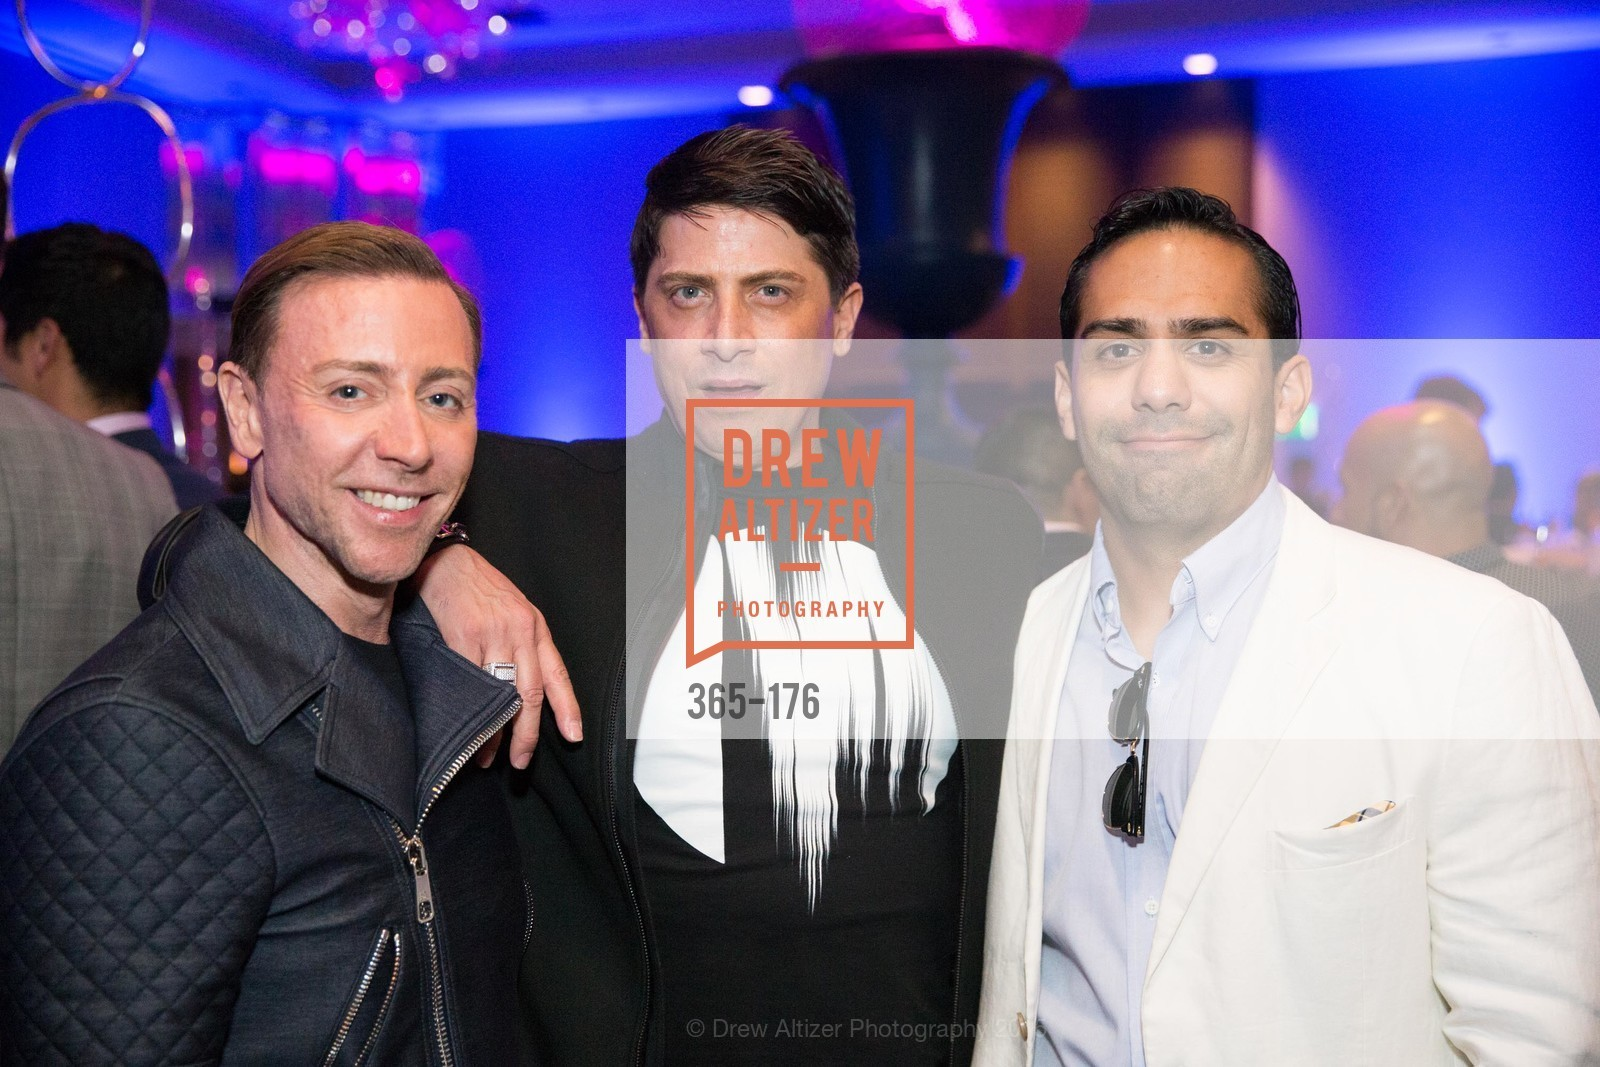 Mark Rhoades, Aubrey Brewster, VIP Pride Celebration 2015, St. Regis, June 18th, 2015,Drew Altizer, Drew Altizer Photography, full-service agency, private events, San Francisco photographer, photographer california